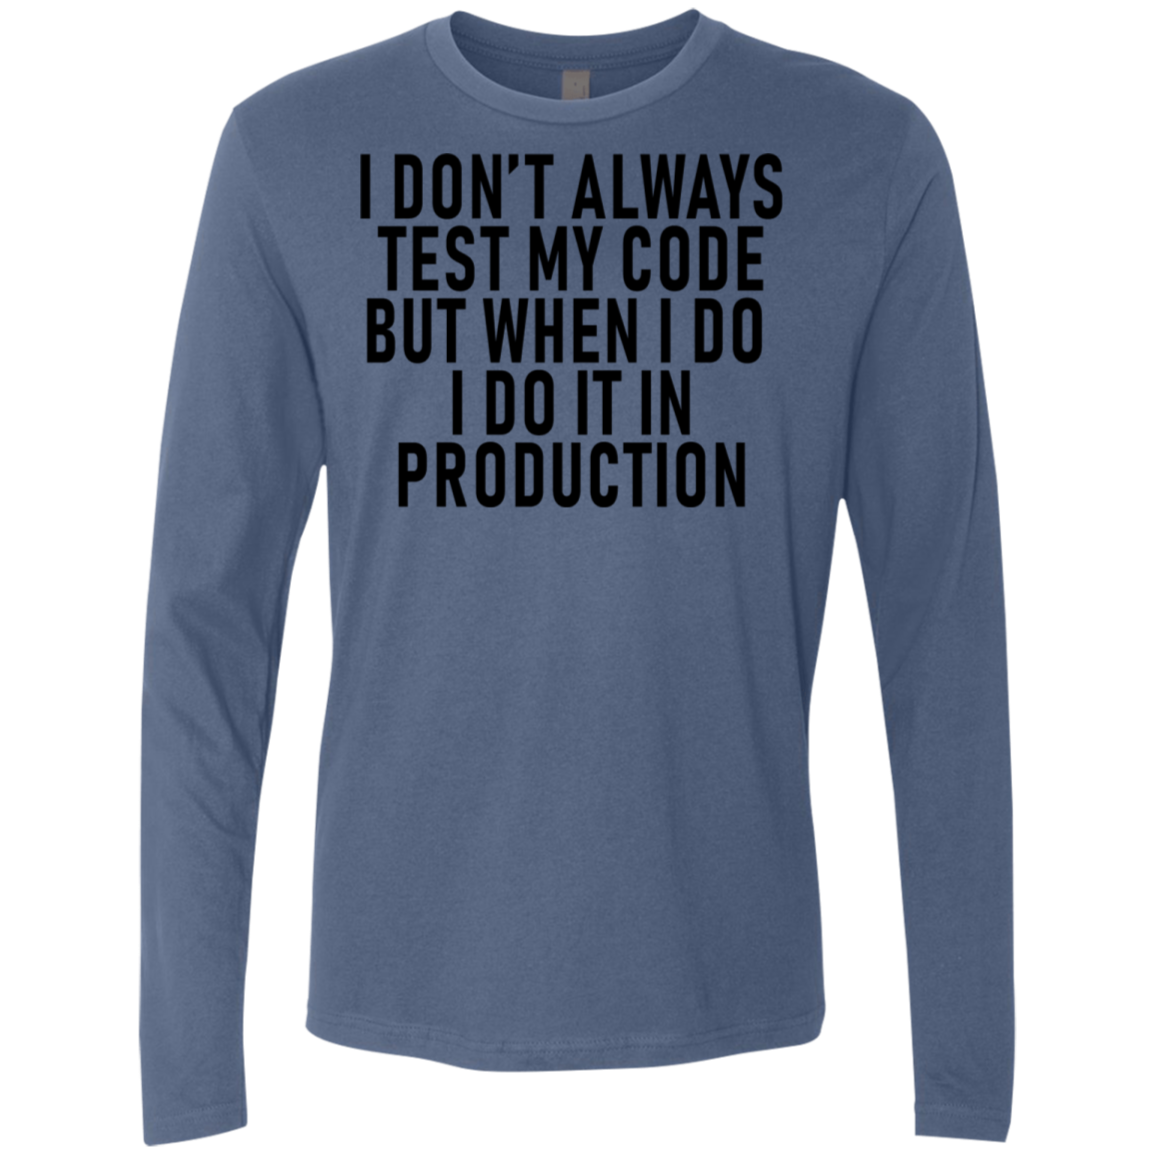 I Don't Always Test My Code But When I Do I Do It In Production Men's Long Sleeve Tee